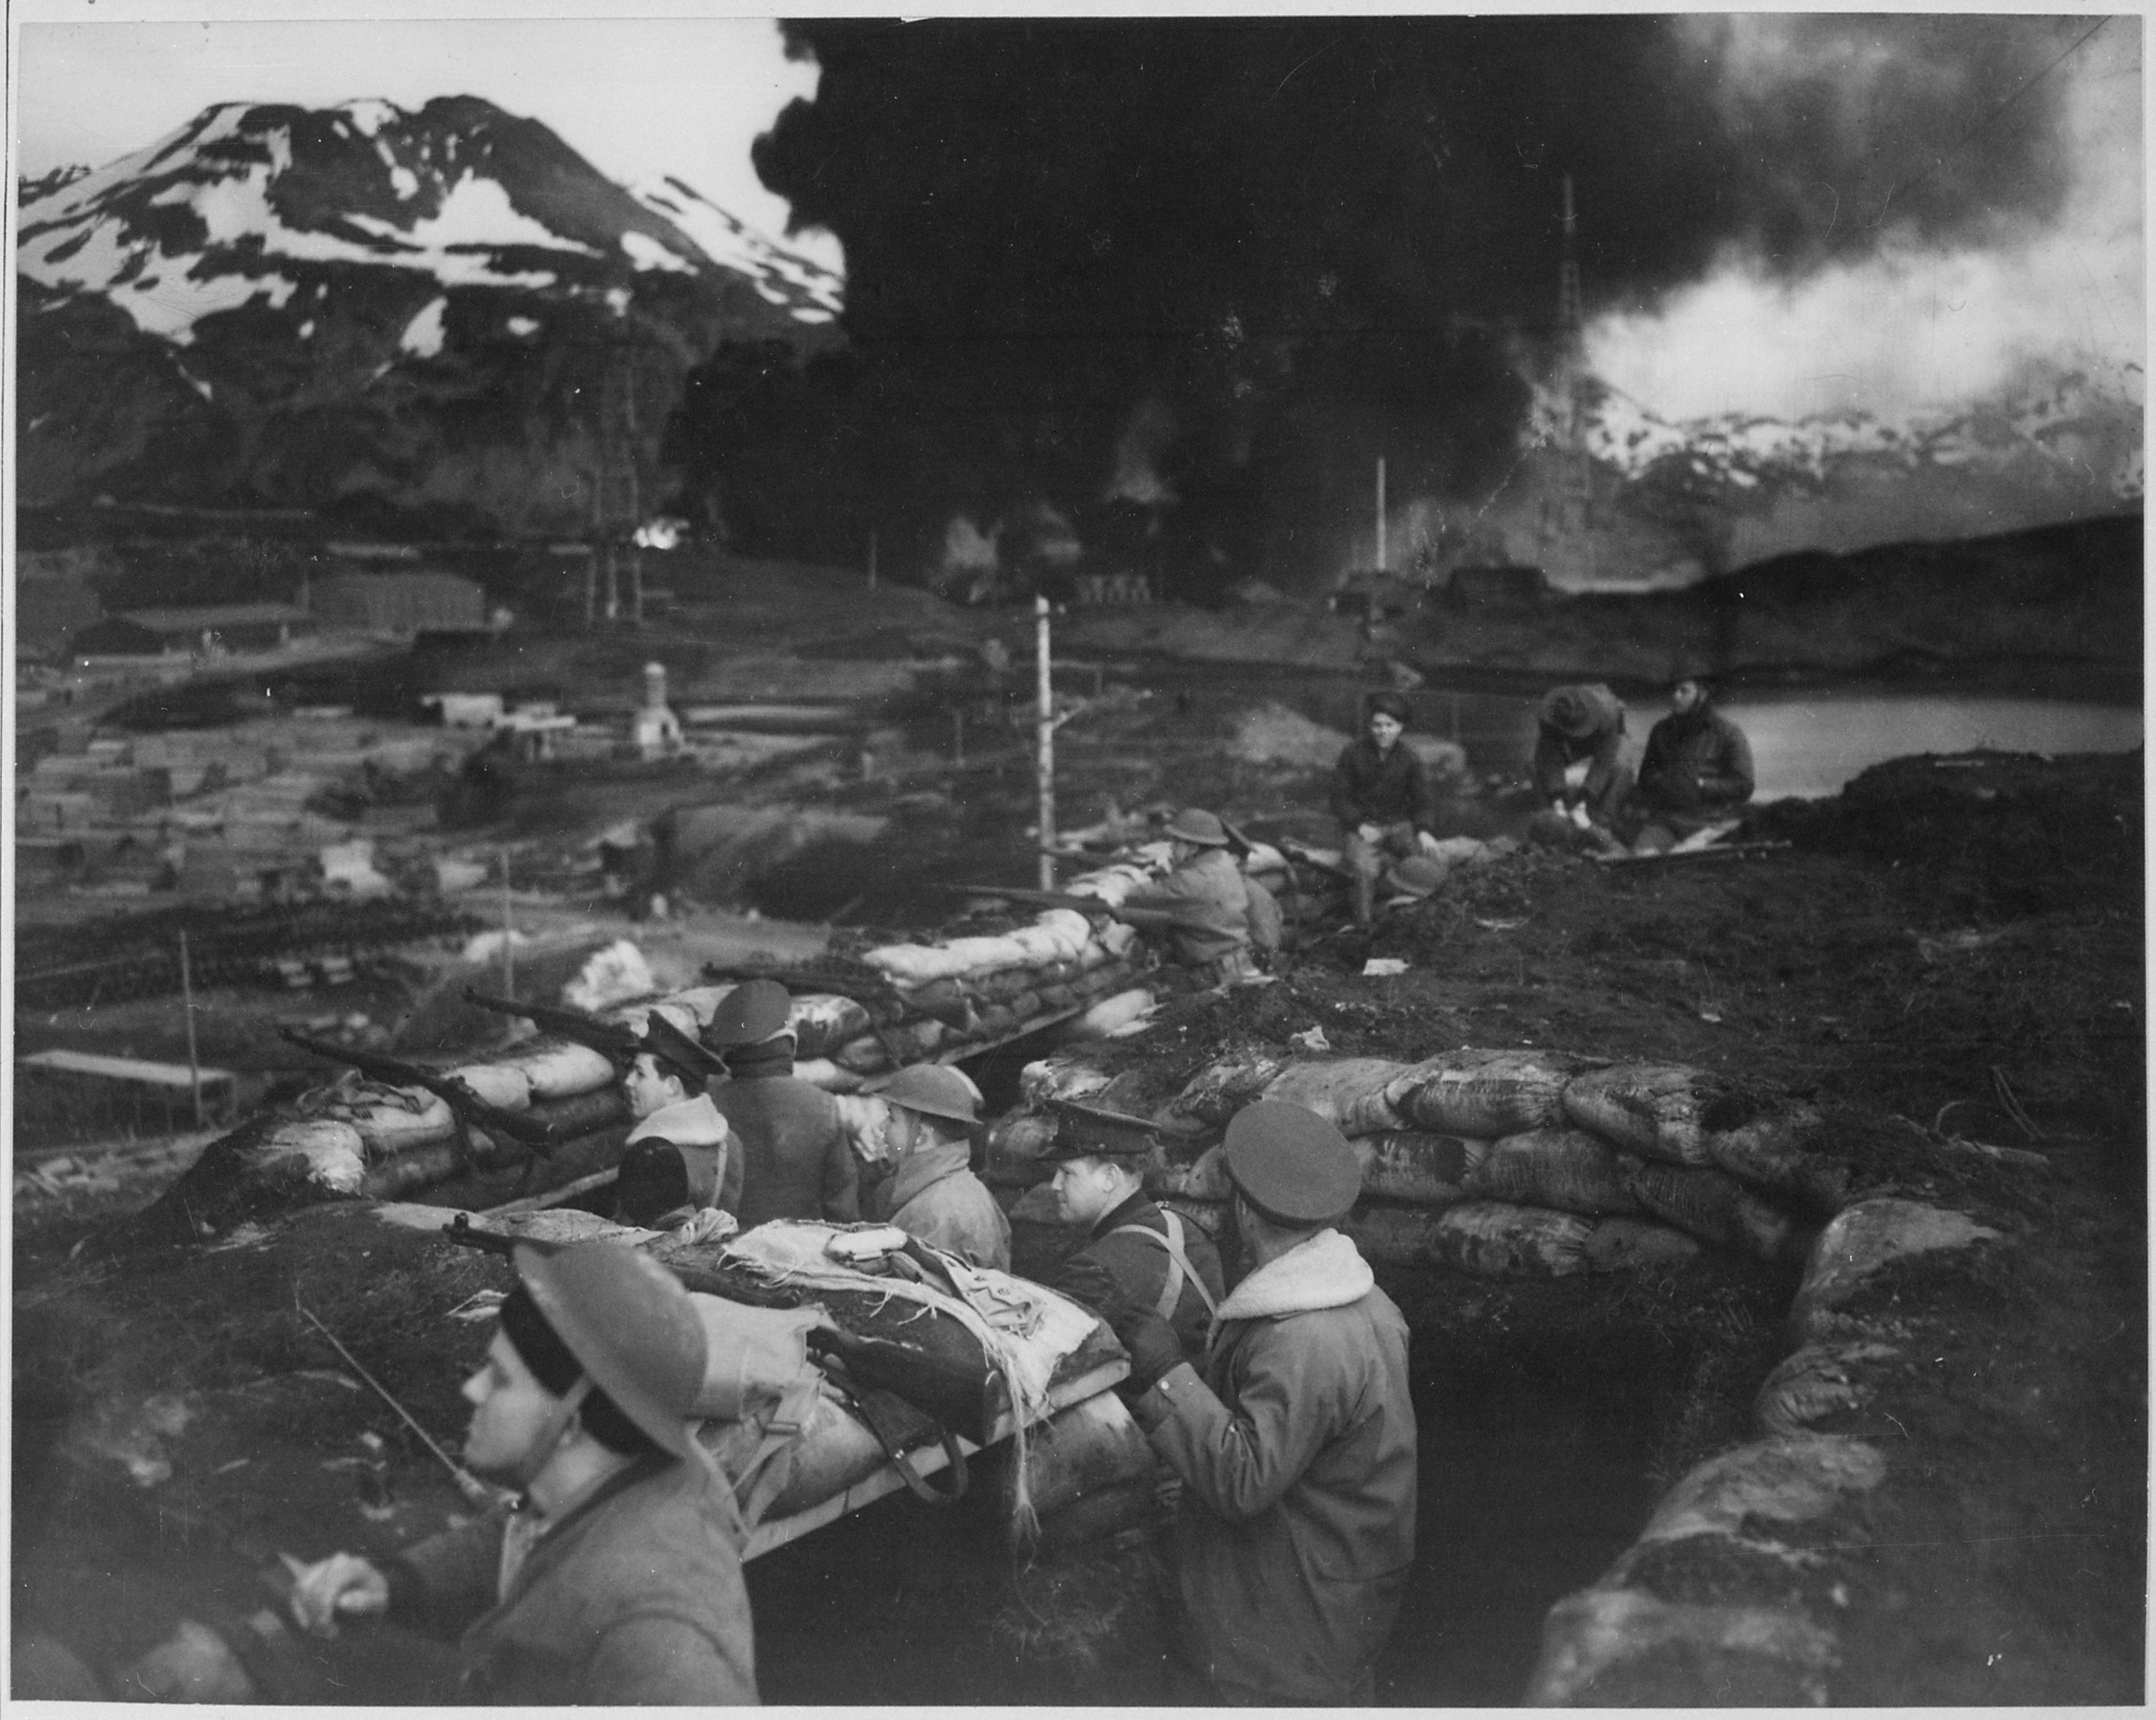 Japanese attack on Dutch Harbor, June 3, 1942. Group of U.S. Marines on the